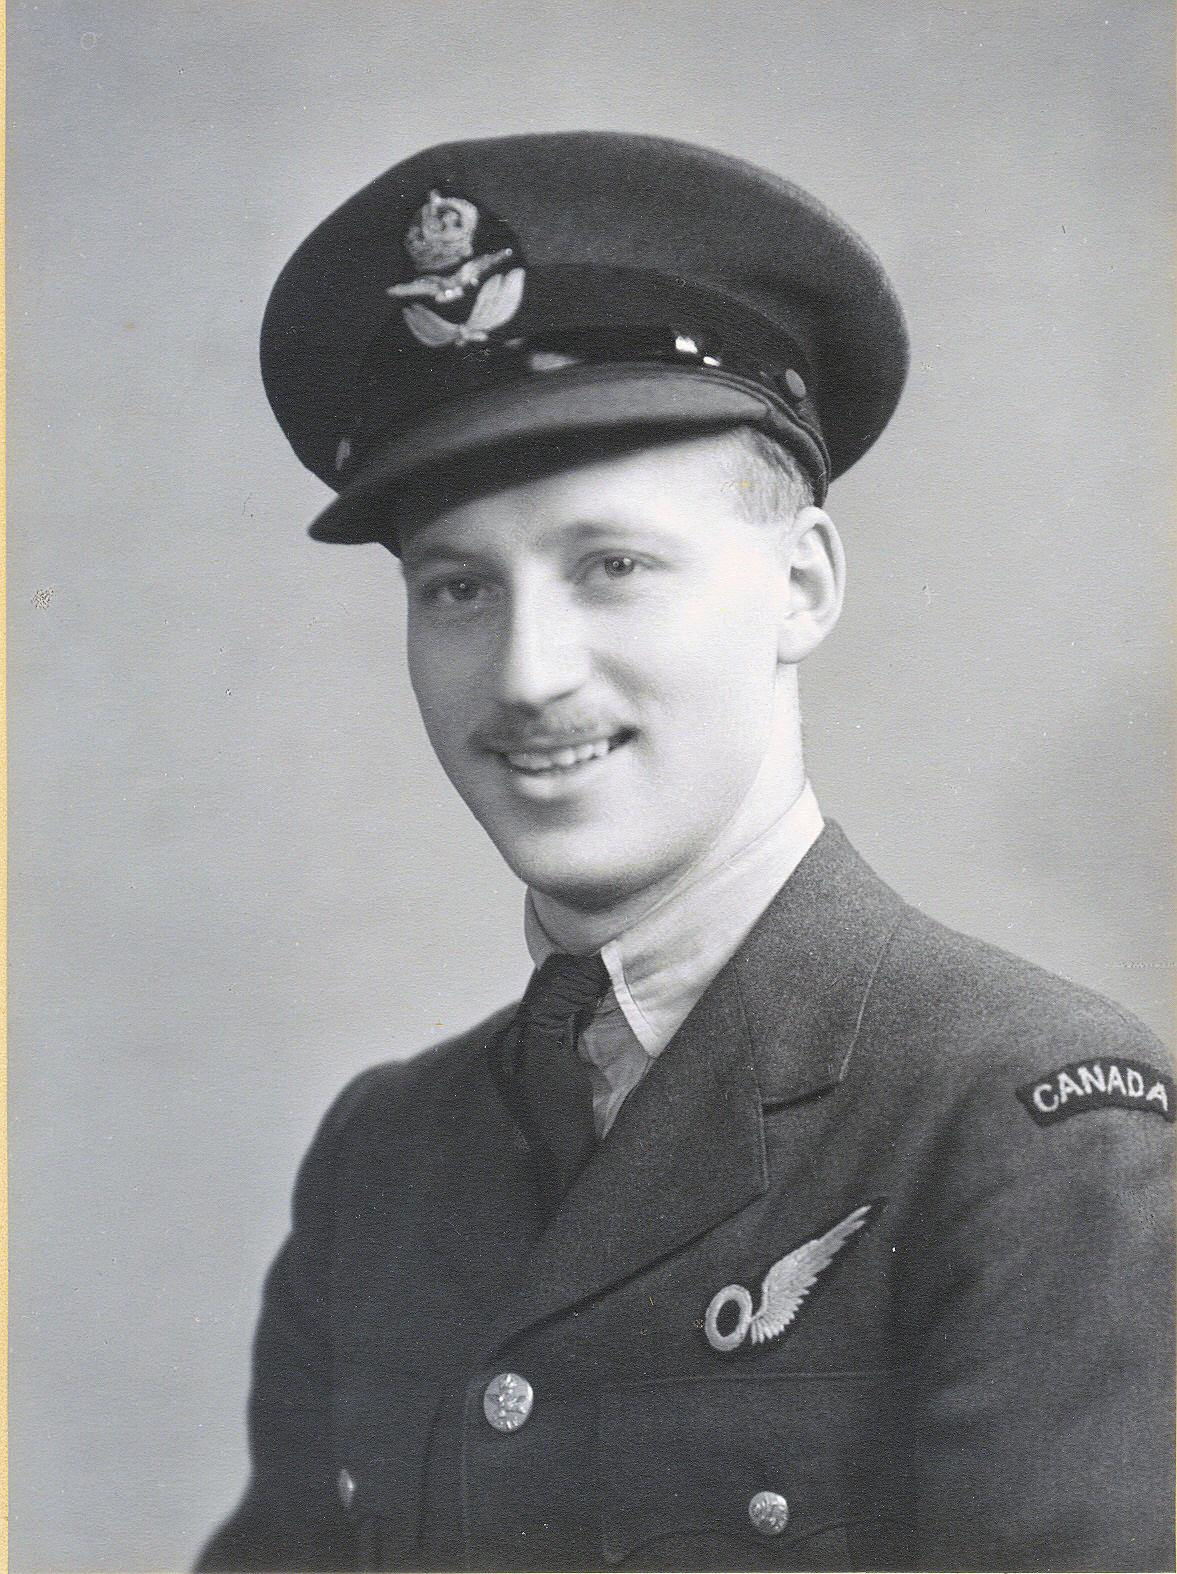 Photo of Wilson Albert Reason– Willie in his RCAF uniform Wilson - June 17, 1918 to 30 May 1942